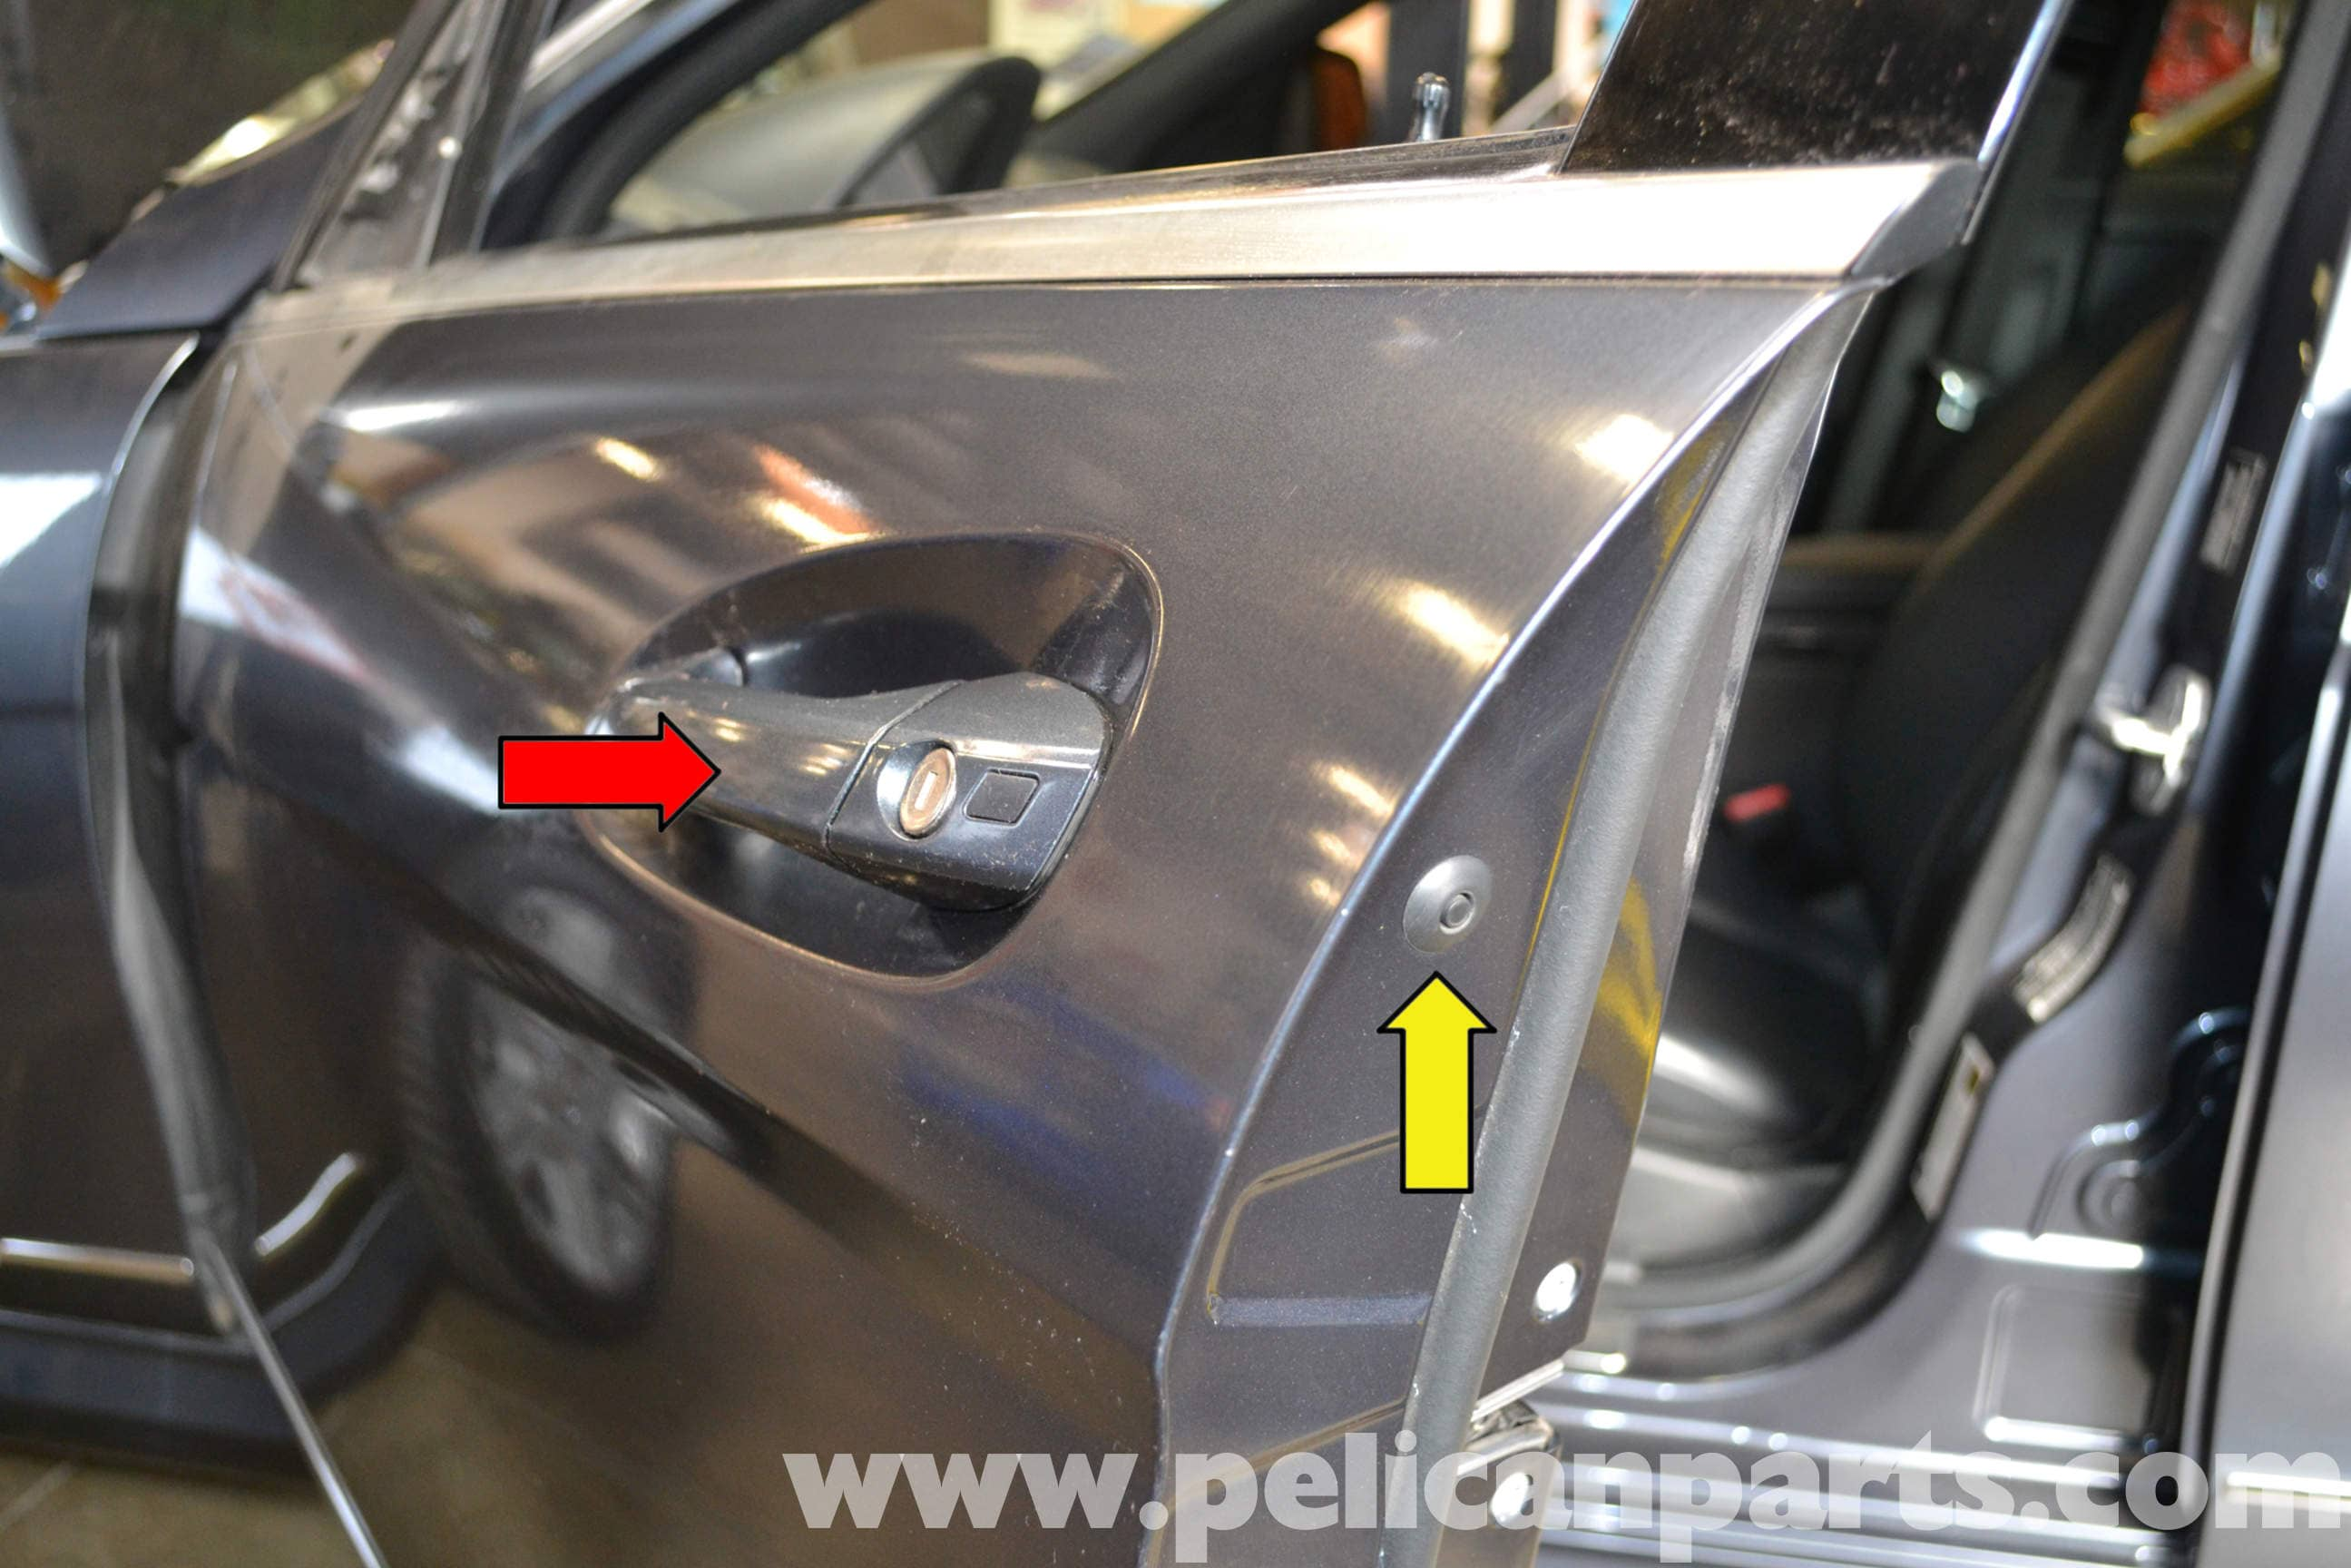 Mercedes Benz W204 Exterior Door Handle Removal 2008 2014 C250 C300 C350 Pelican Parts